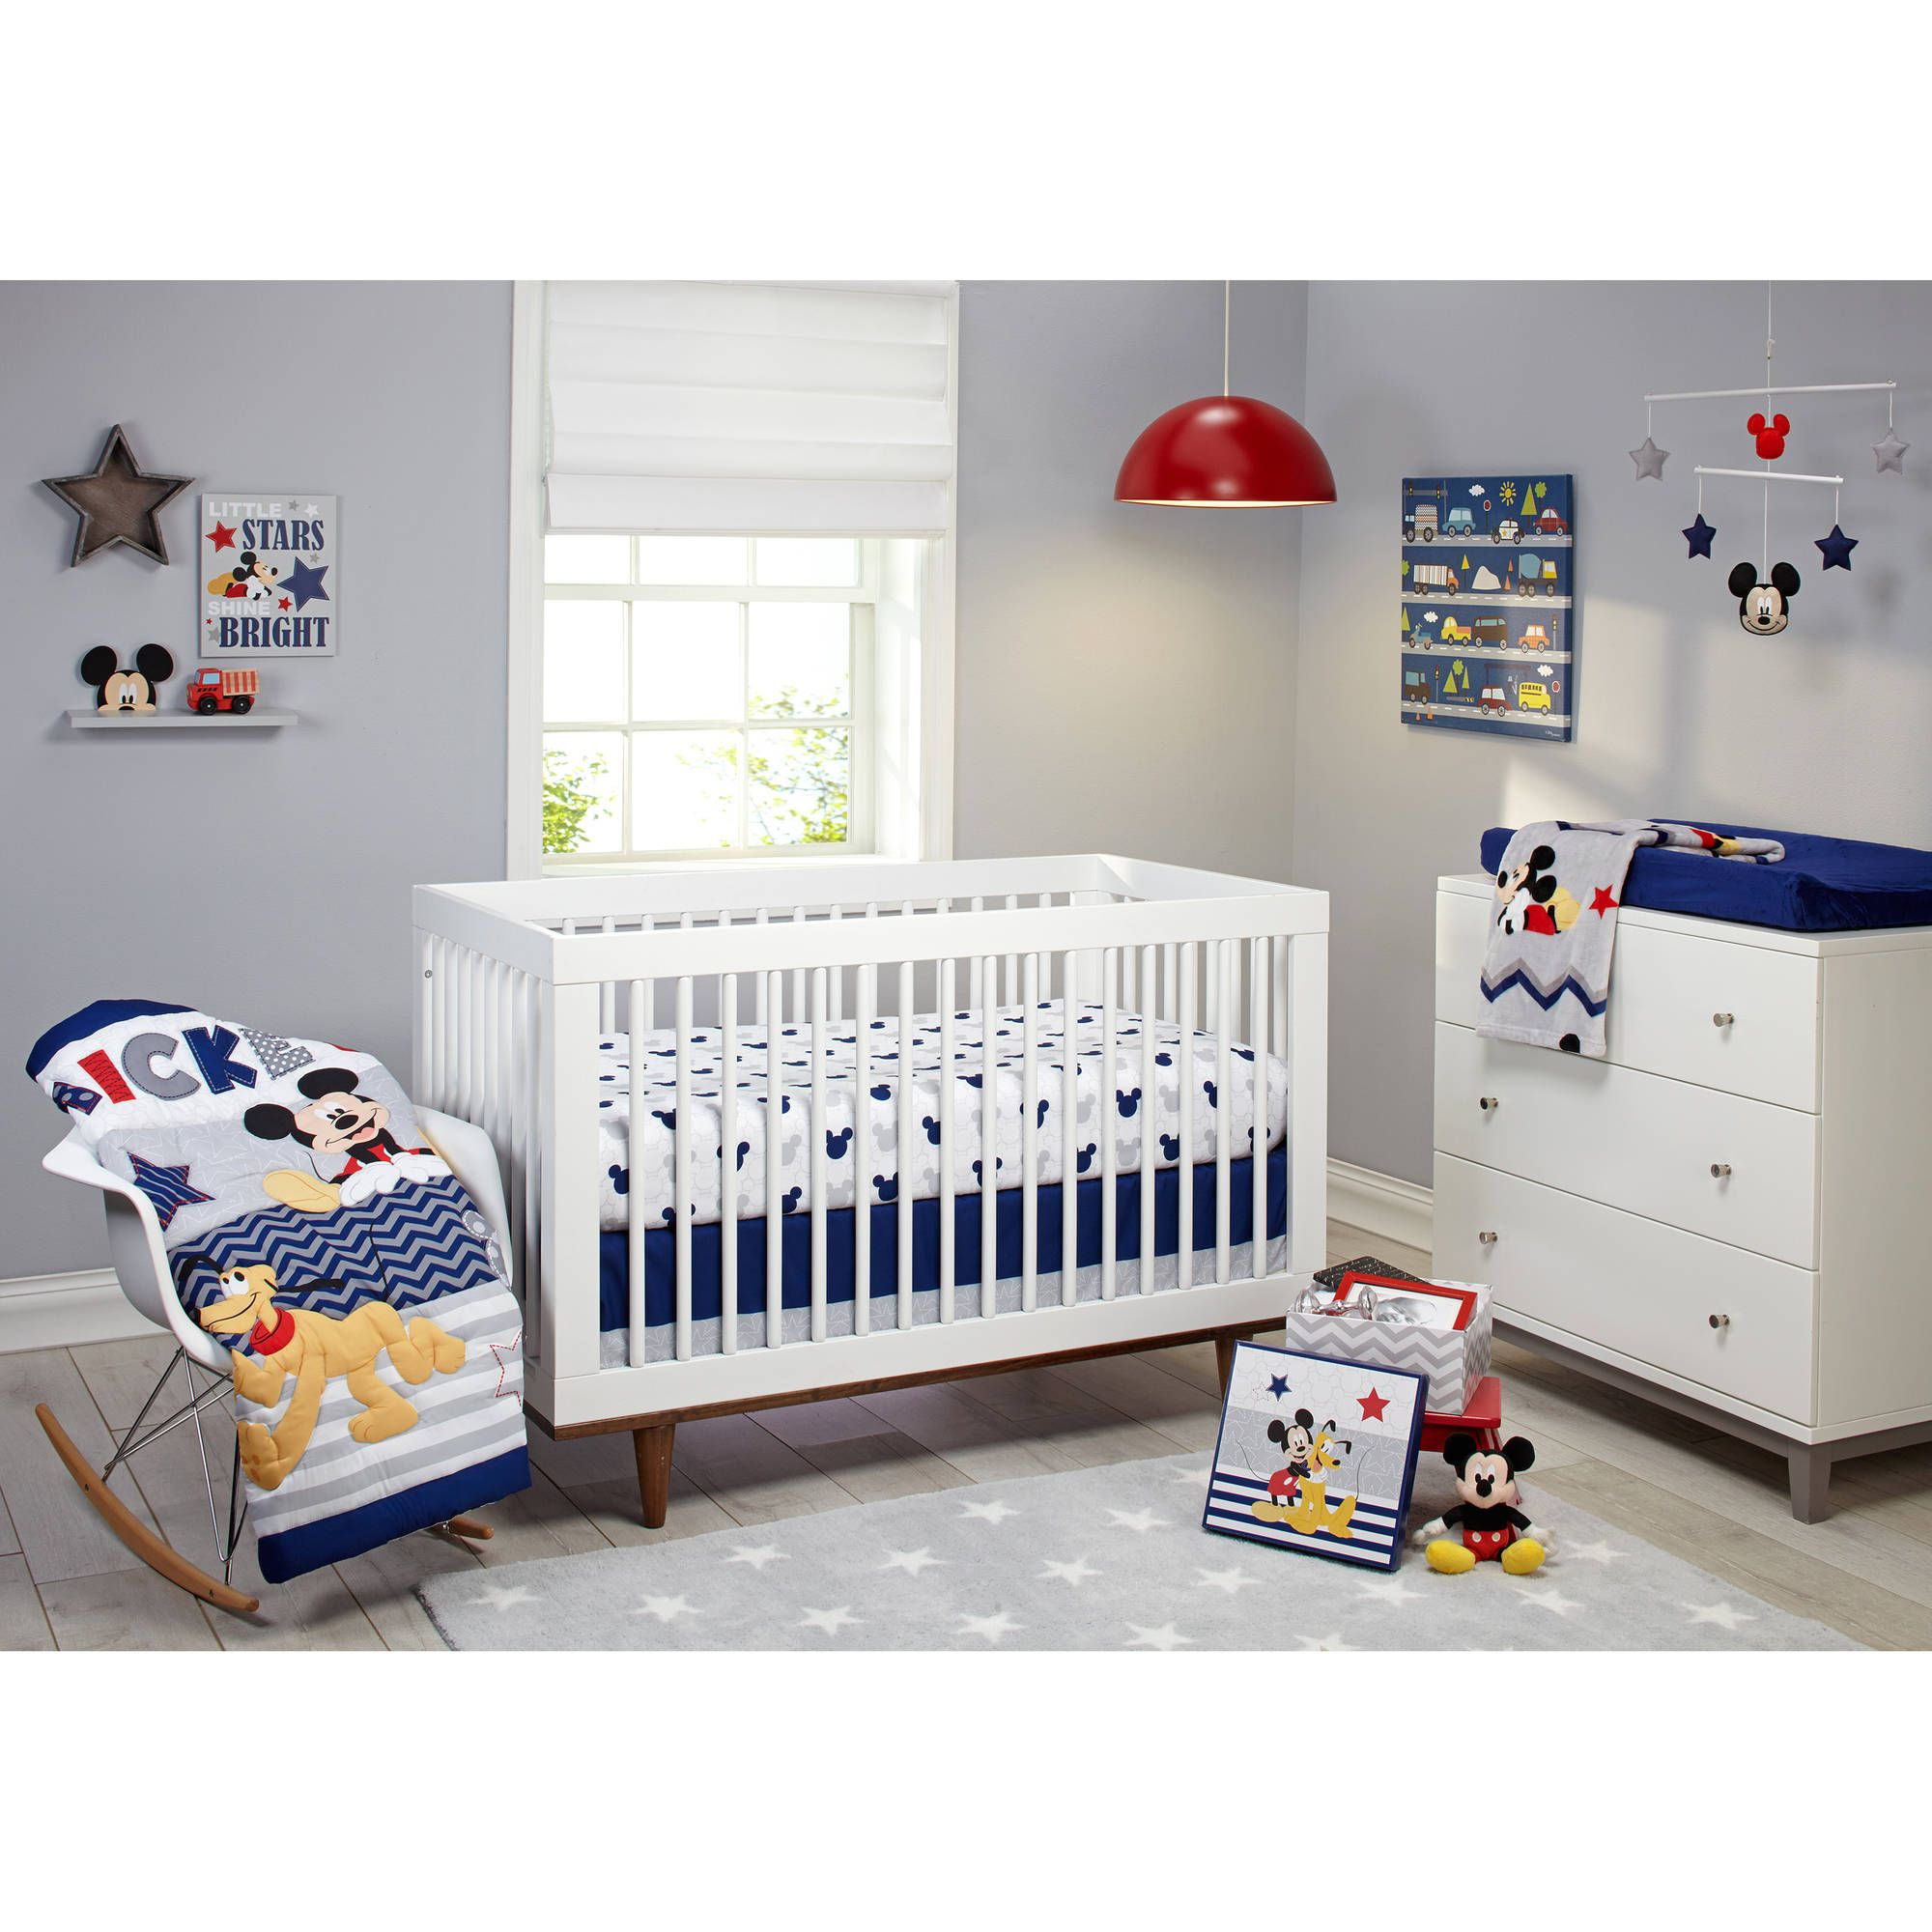 Beau Disney Letu0027s Go Mickey II 4 Piece Crib Bedding Set   Walmart.com Got This  For The Babyu0027s Nursery. So Ive Been Mixing And Matching With The Best  Buddies Crib ...